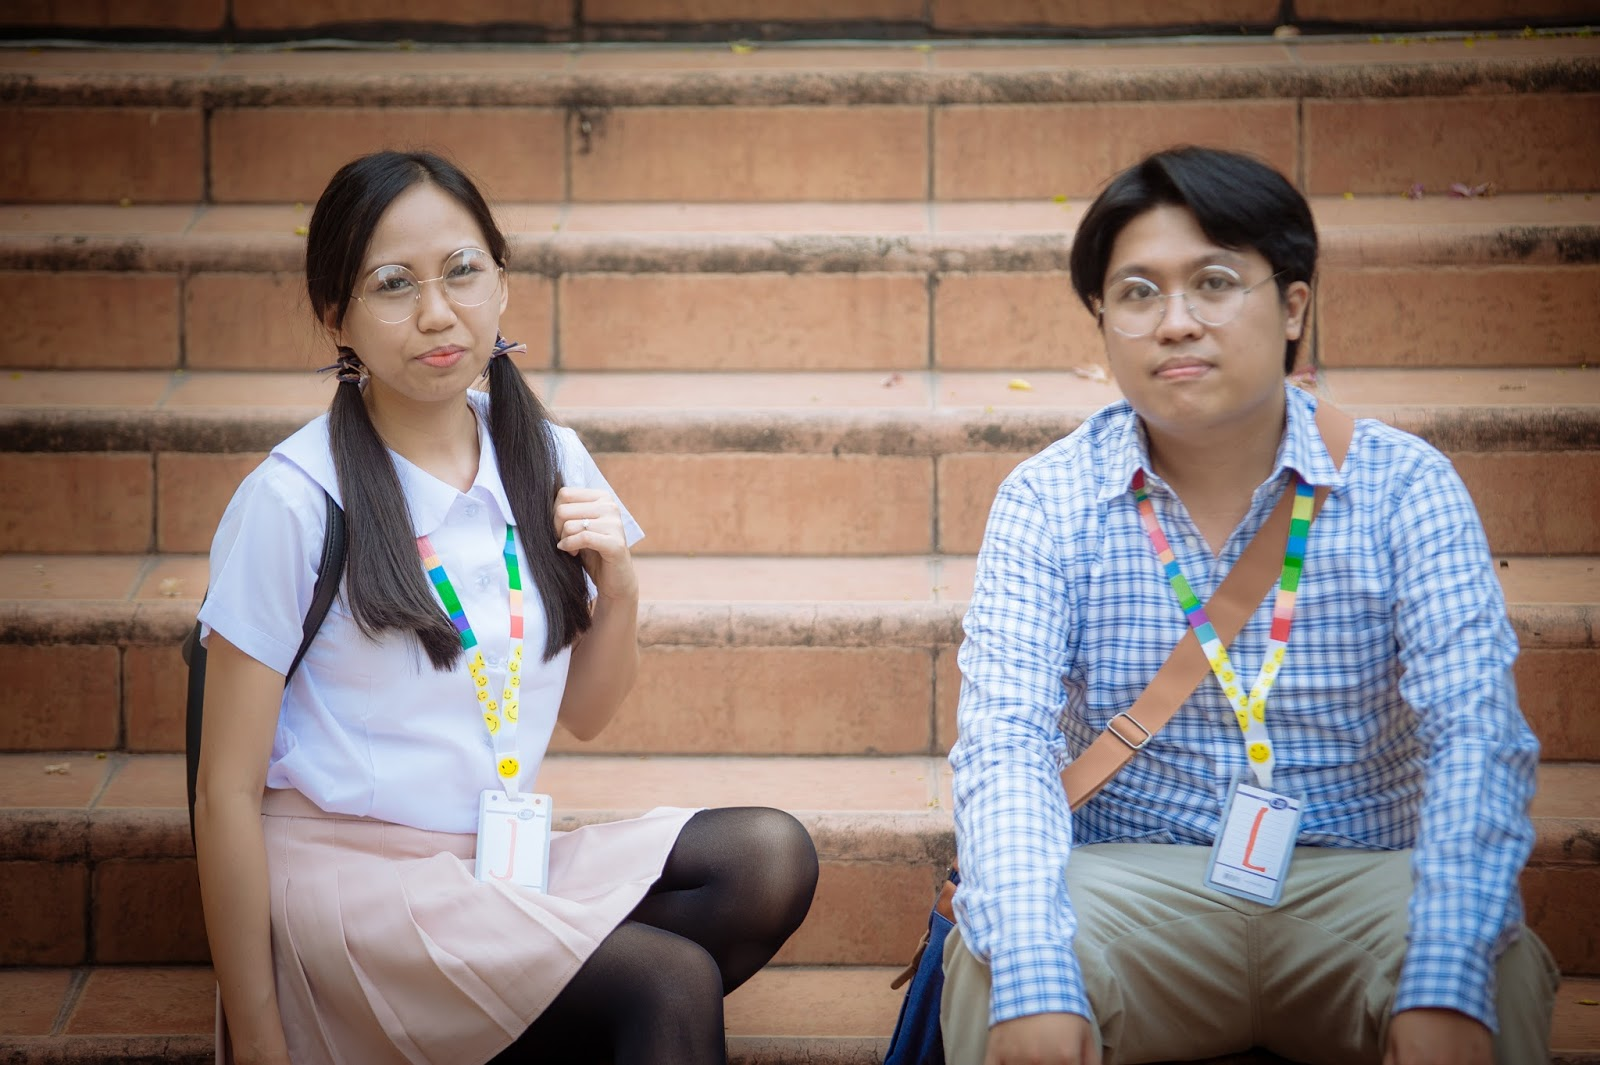 love story in school campus